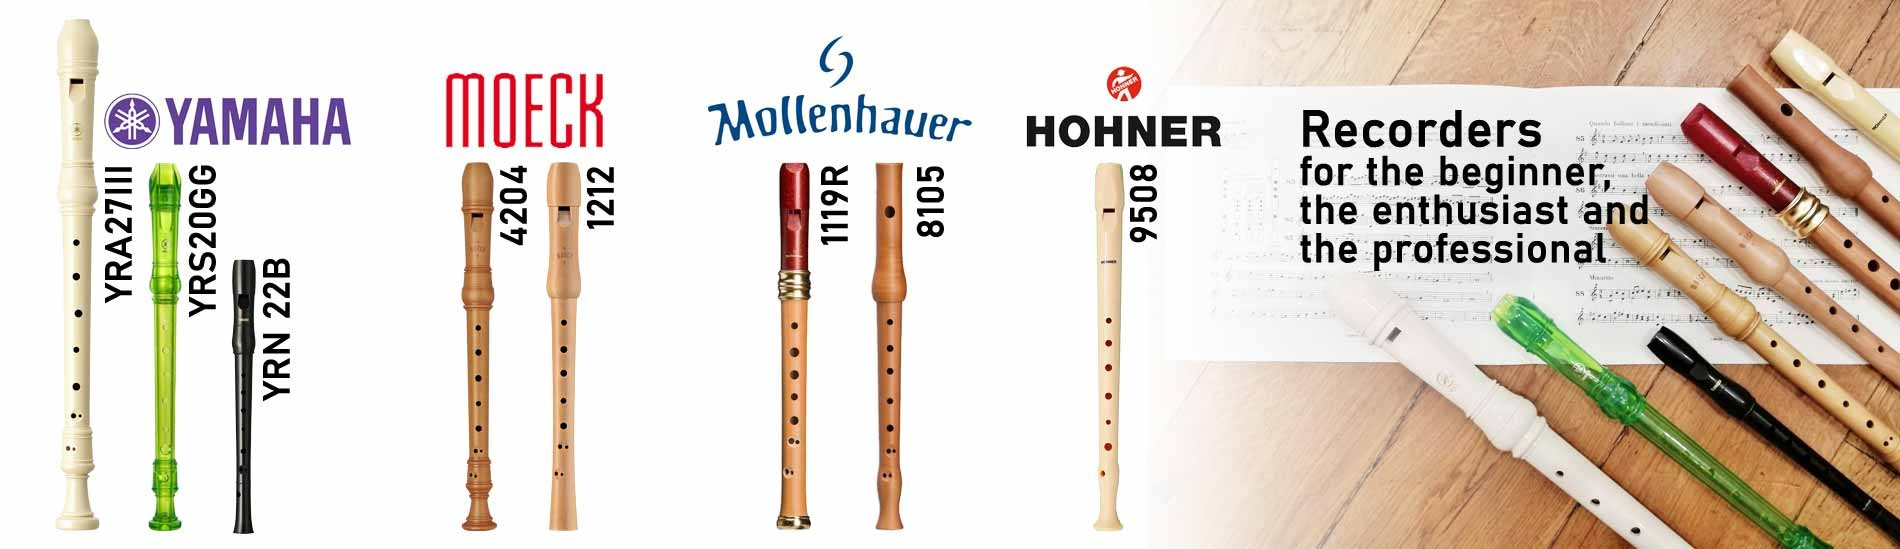 Recorders - For the beginner, the enthusiast and the professional